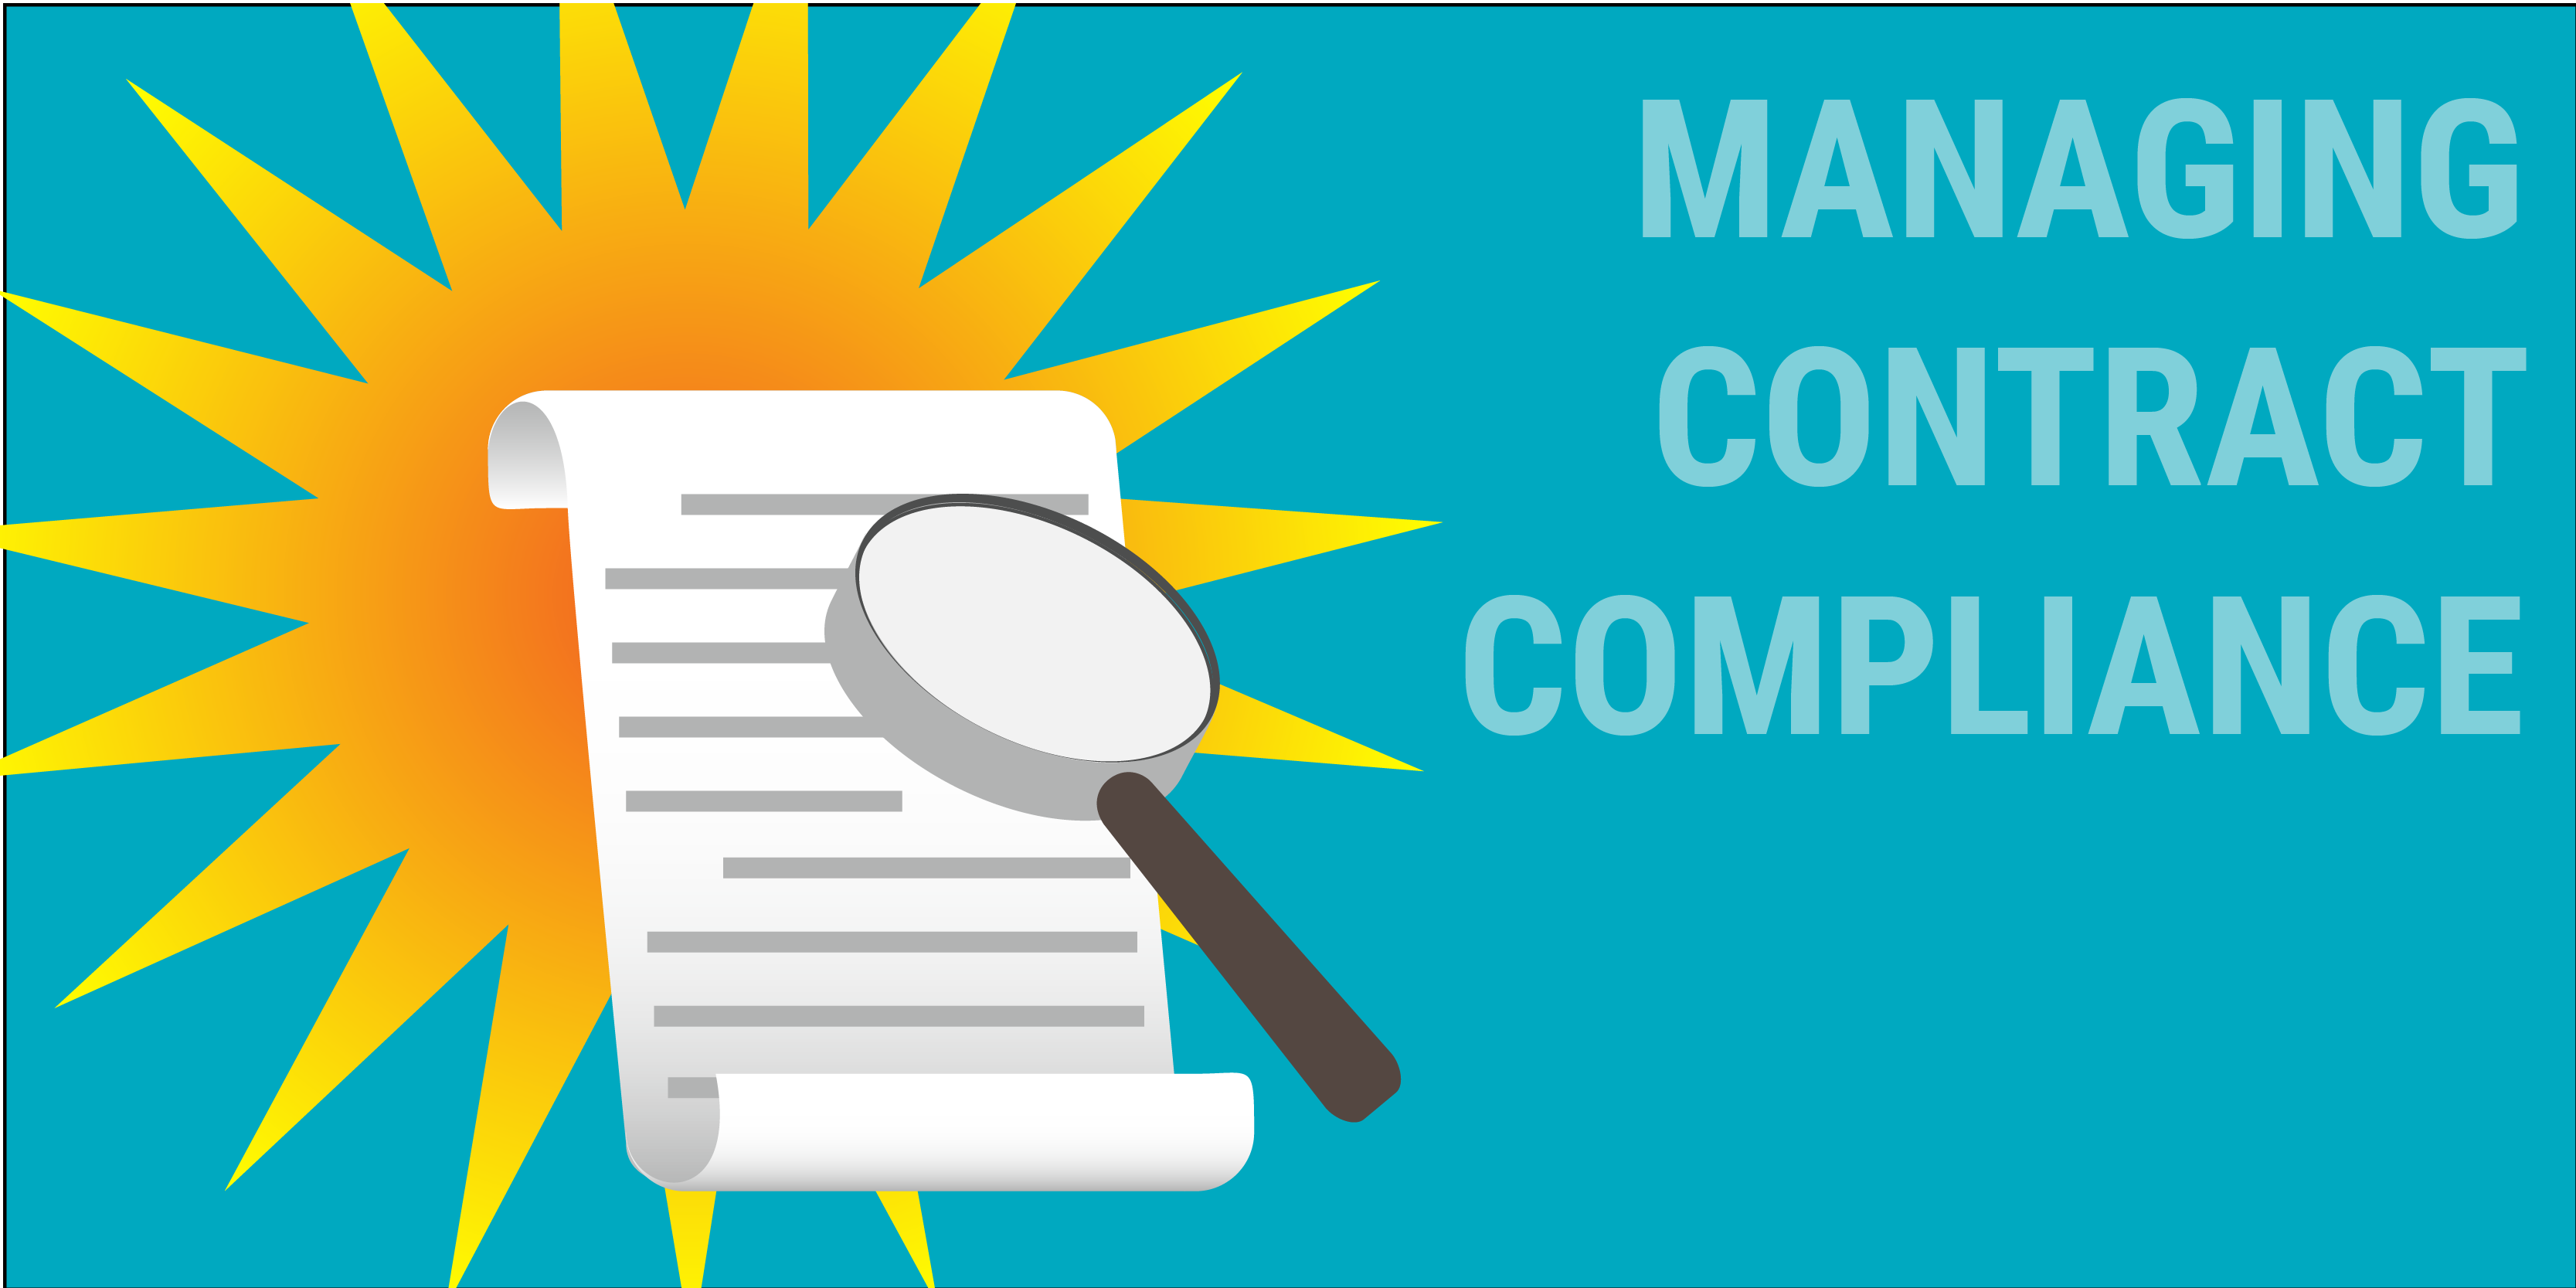 Managing Contract Compliance